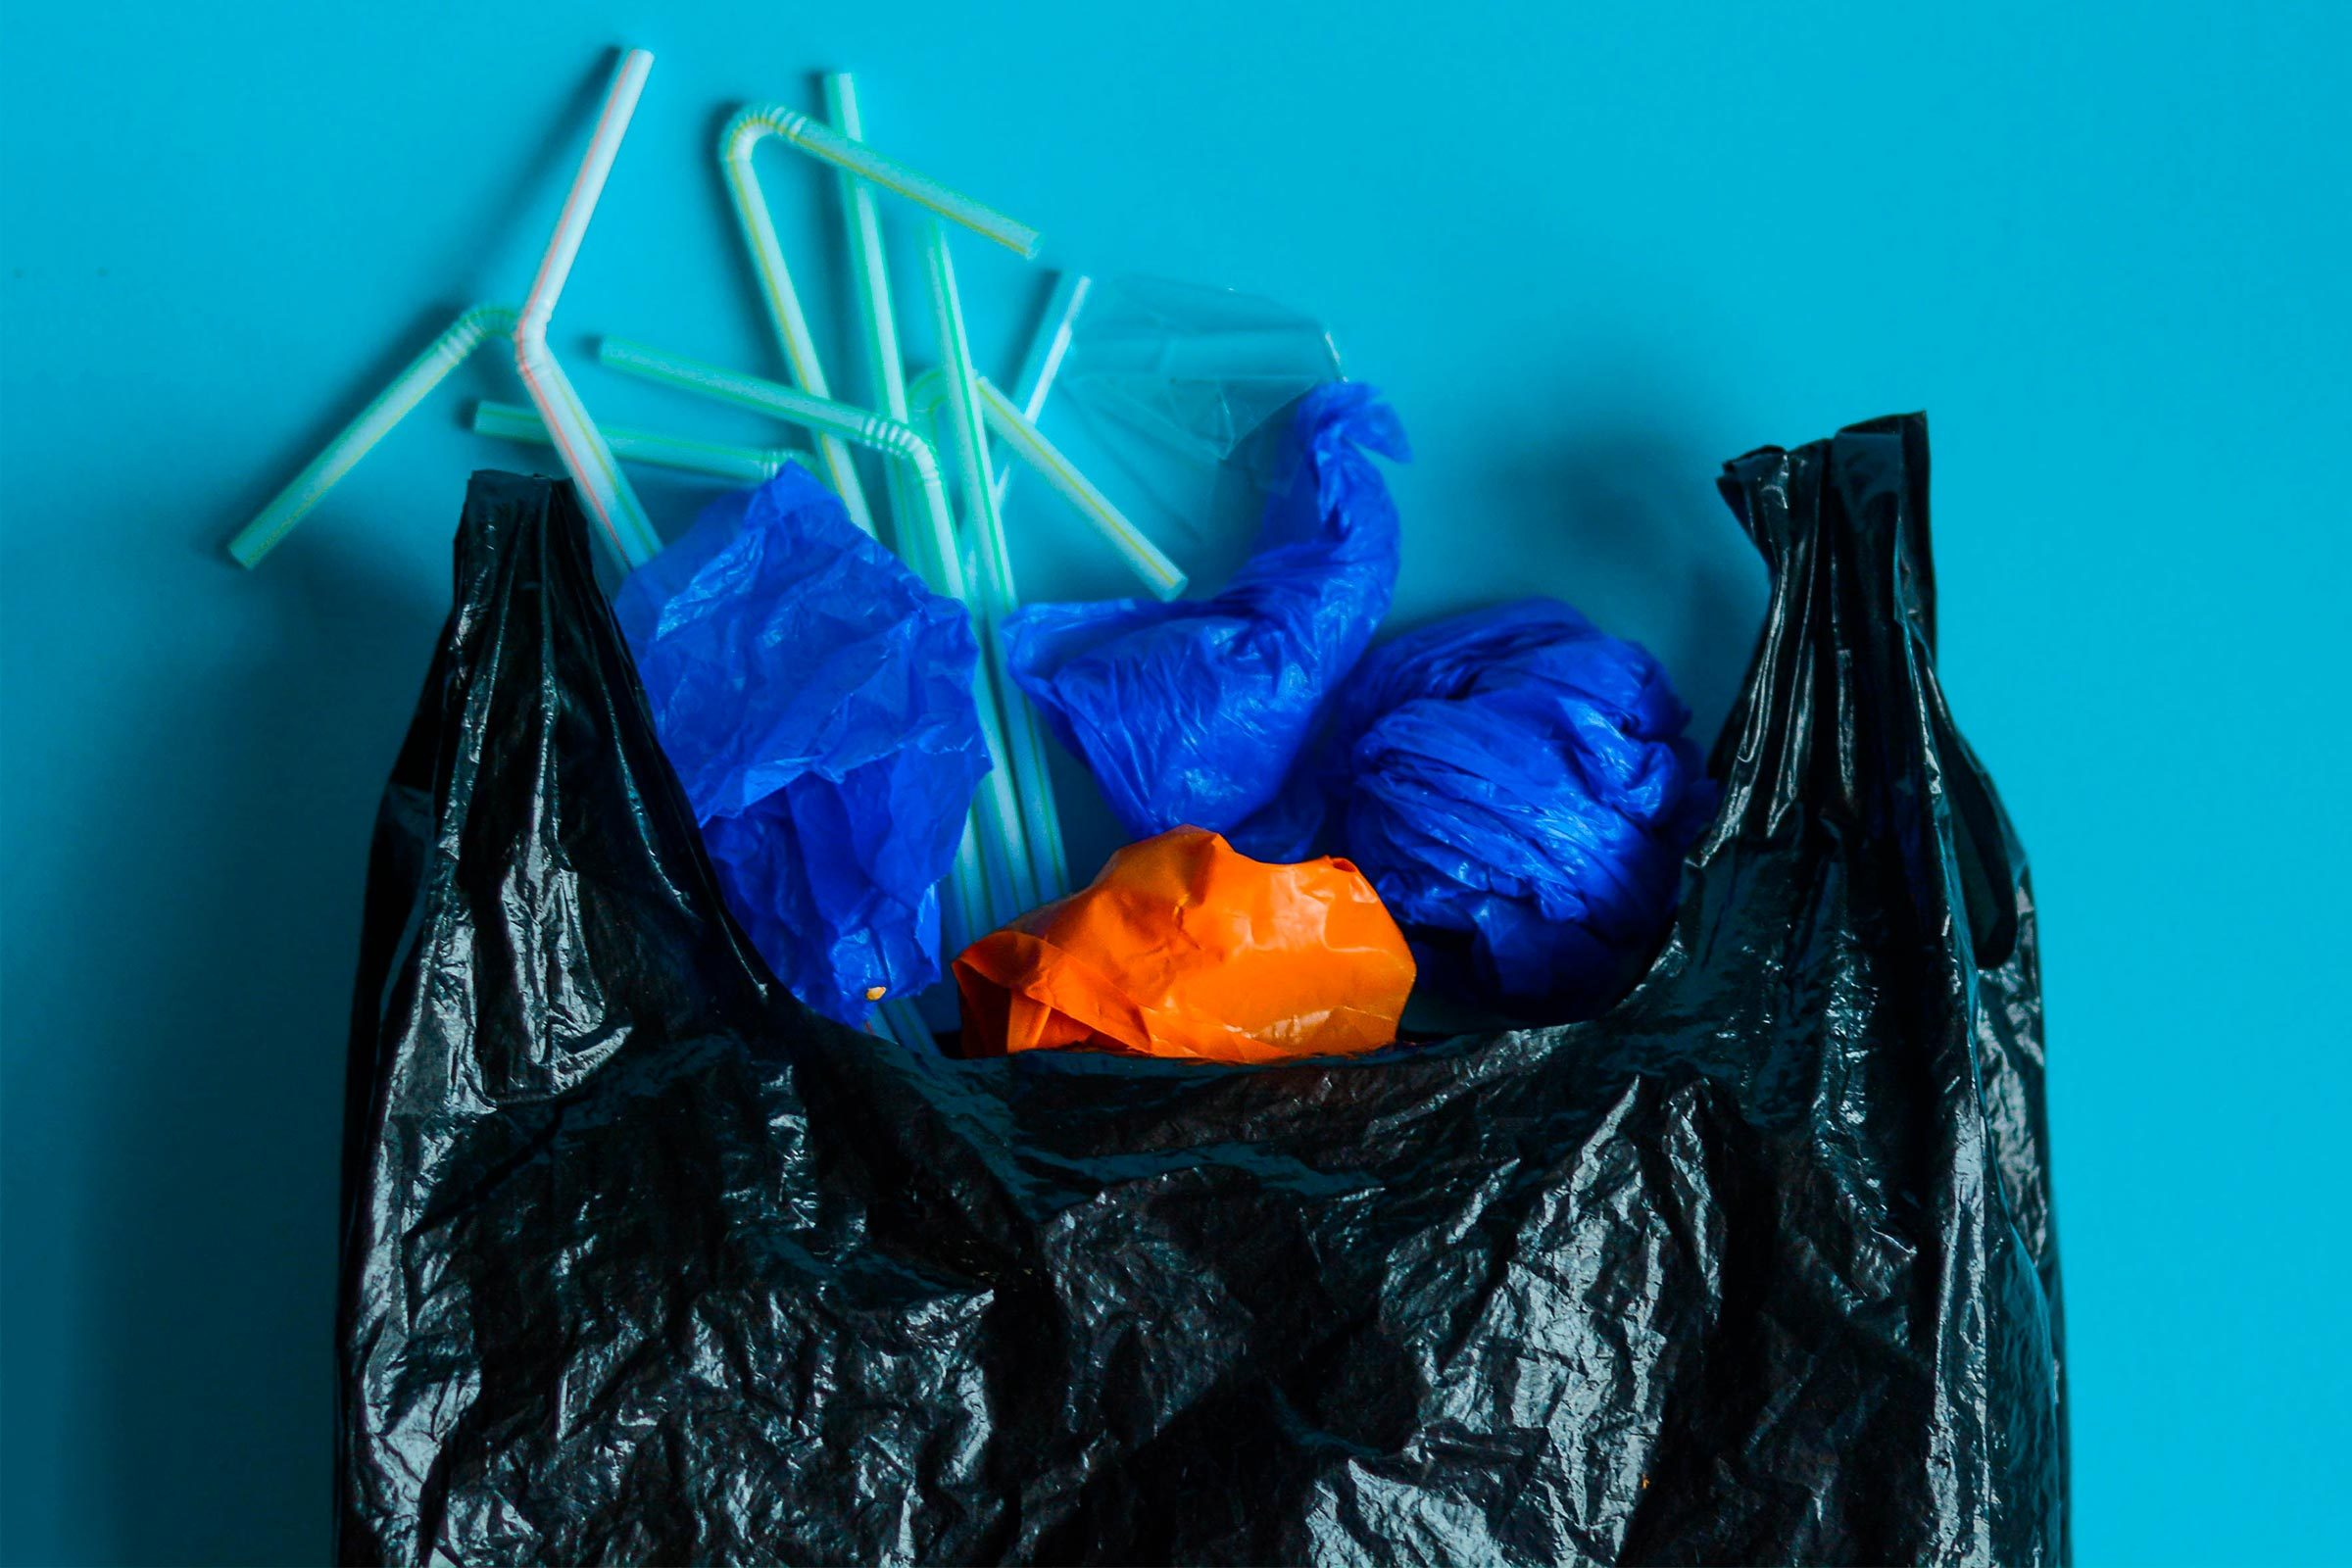 Black plastic bag with variety elements of plastic in it, against a blue background. Representation of plastic pollution